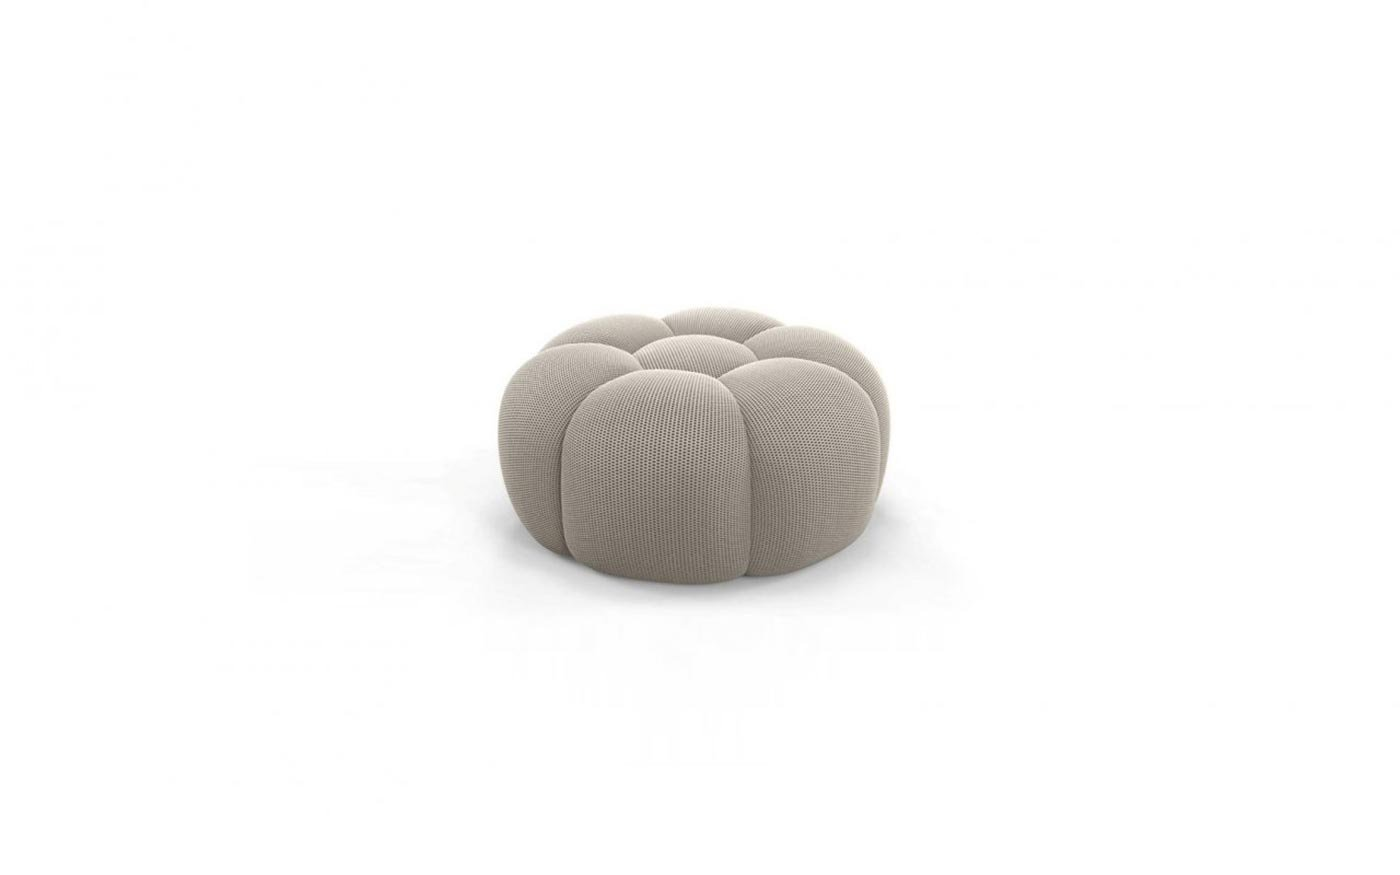 bubble sofa sacha lakic nickelodeon guppies that s silly 3 piece toddler set sofas and ottoman by for roche bobois